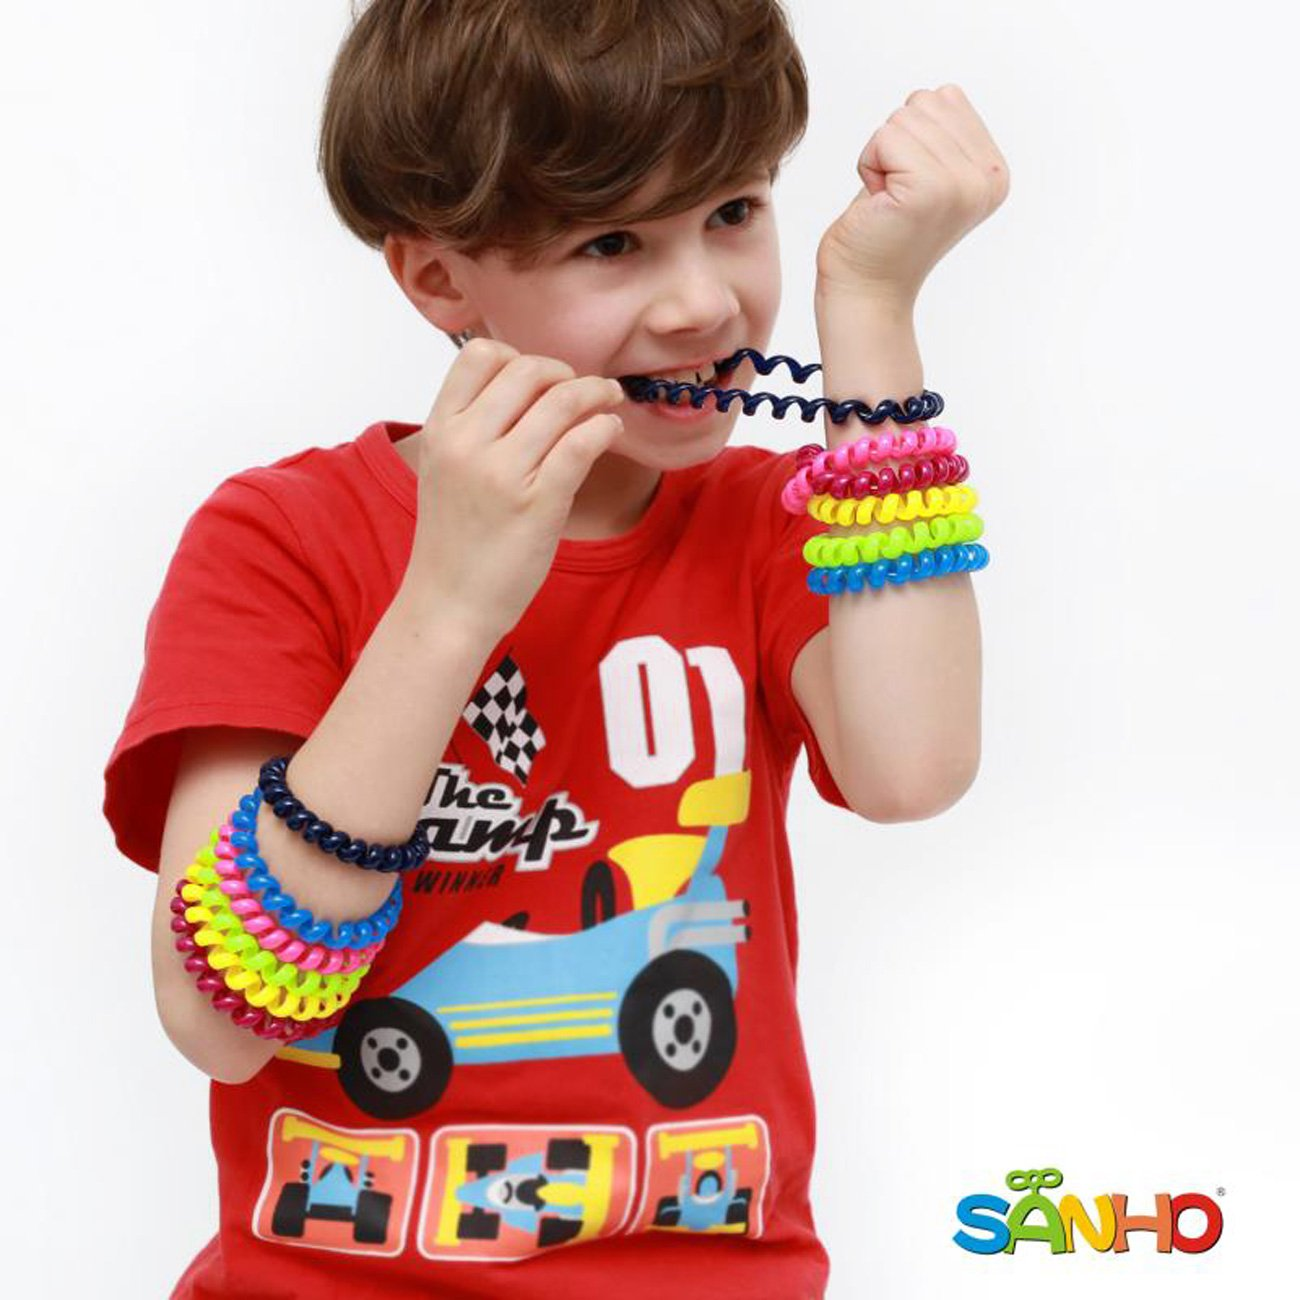 Sanho Chewable Jewelry Coil Bracelet Set- Speech And Communication Aid For Autism And Sensory, Assorted Colors (Set of 12)